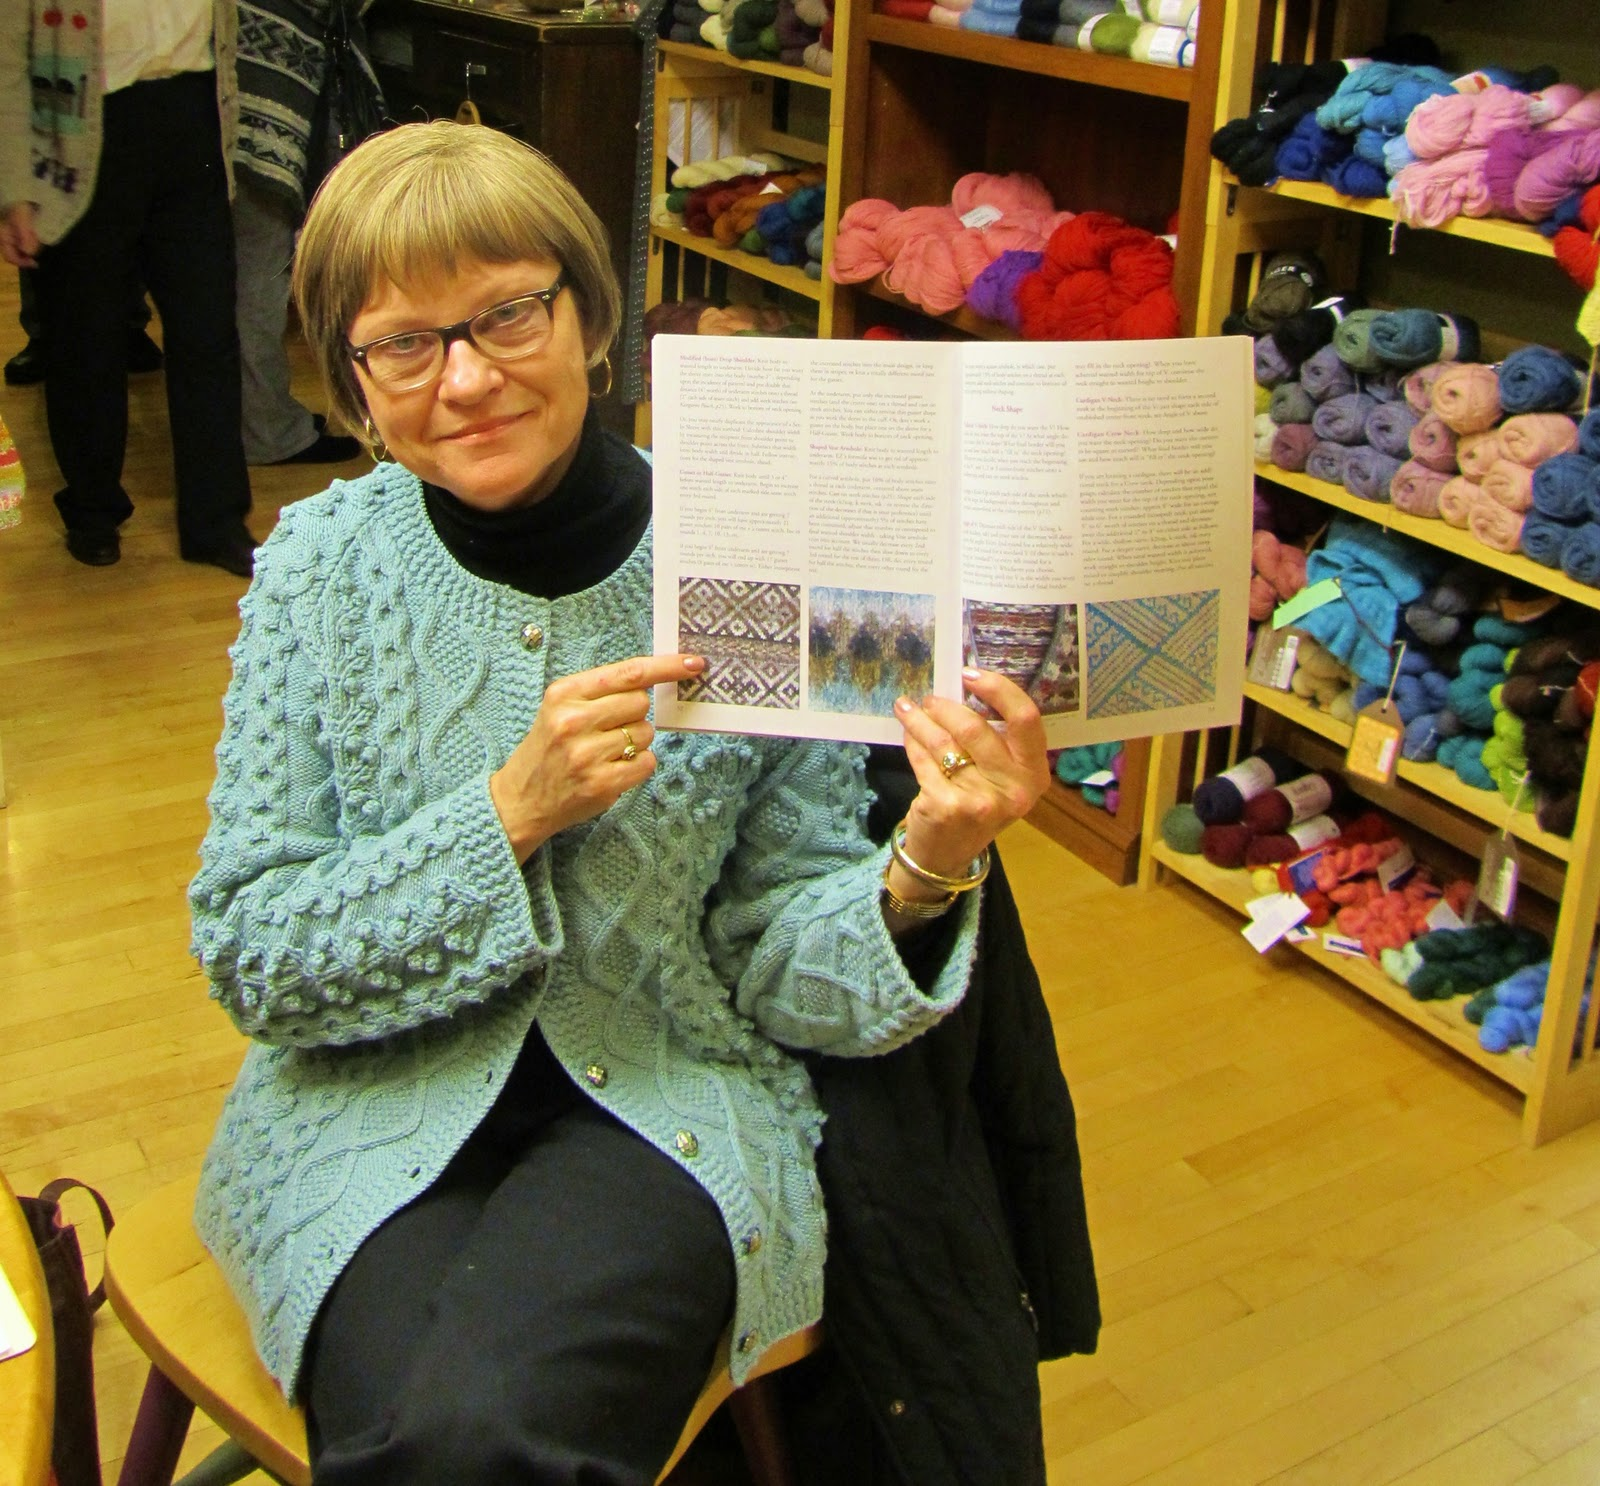 Knitting With Two Colors Meg Swansen : Amber reunion i experience a little excitement